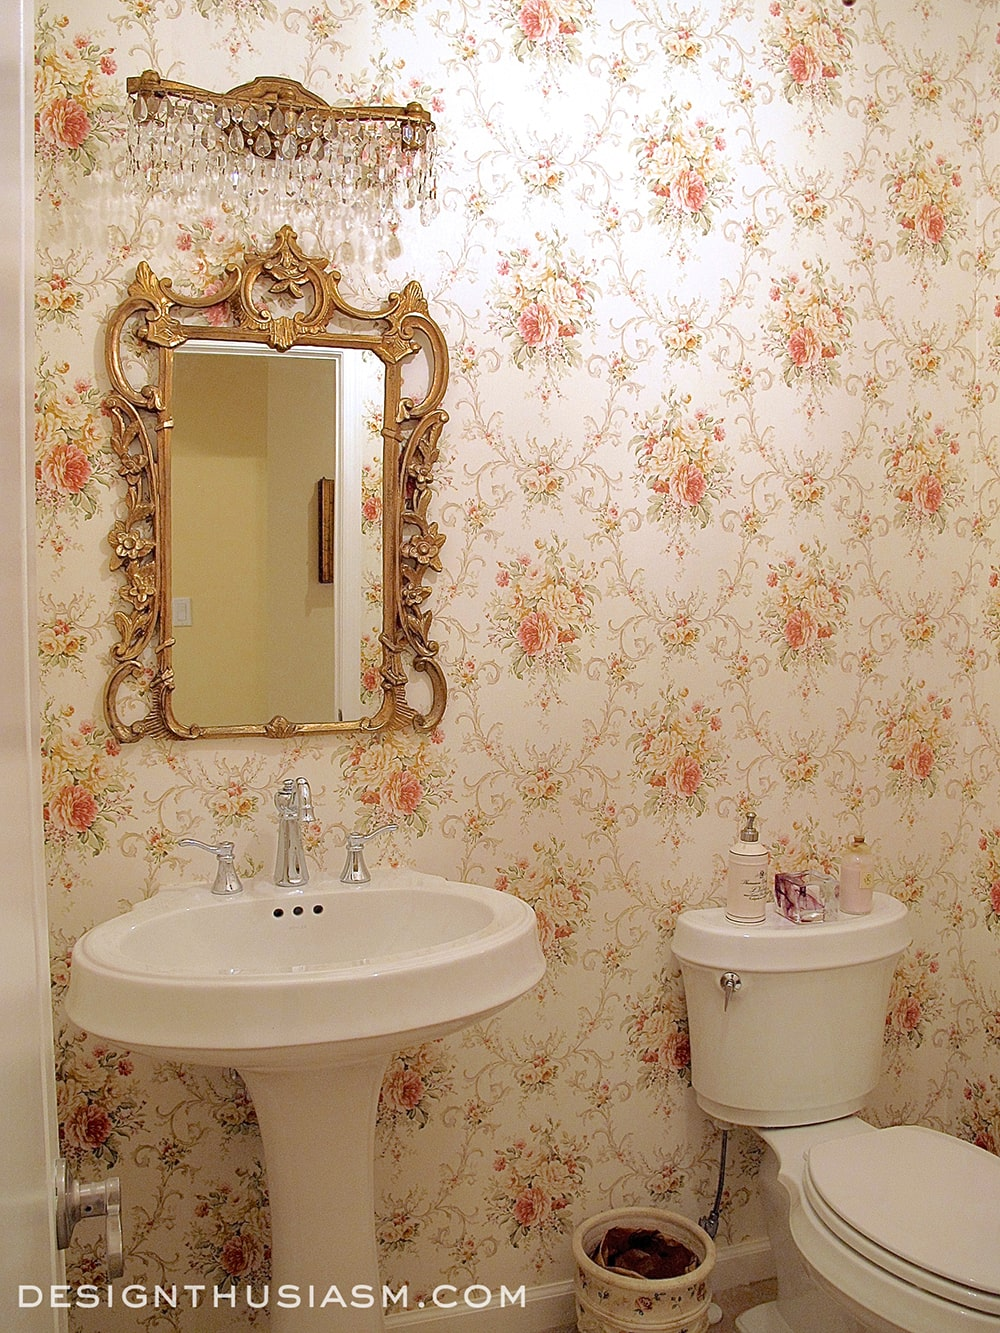 French Country Powder Room - Designthusiasm.com